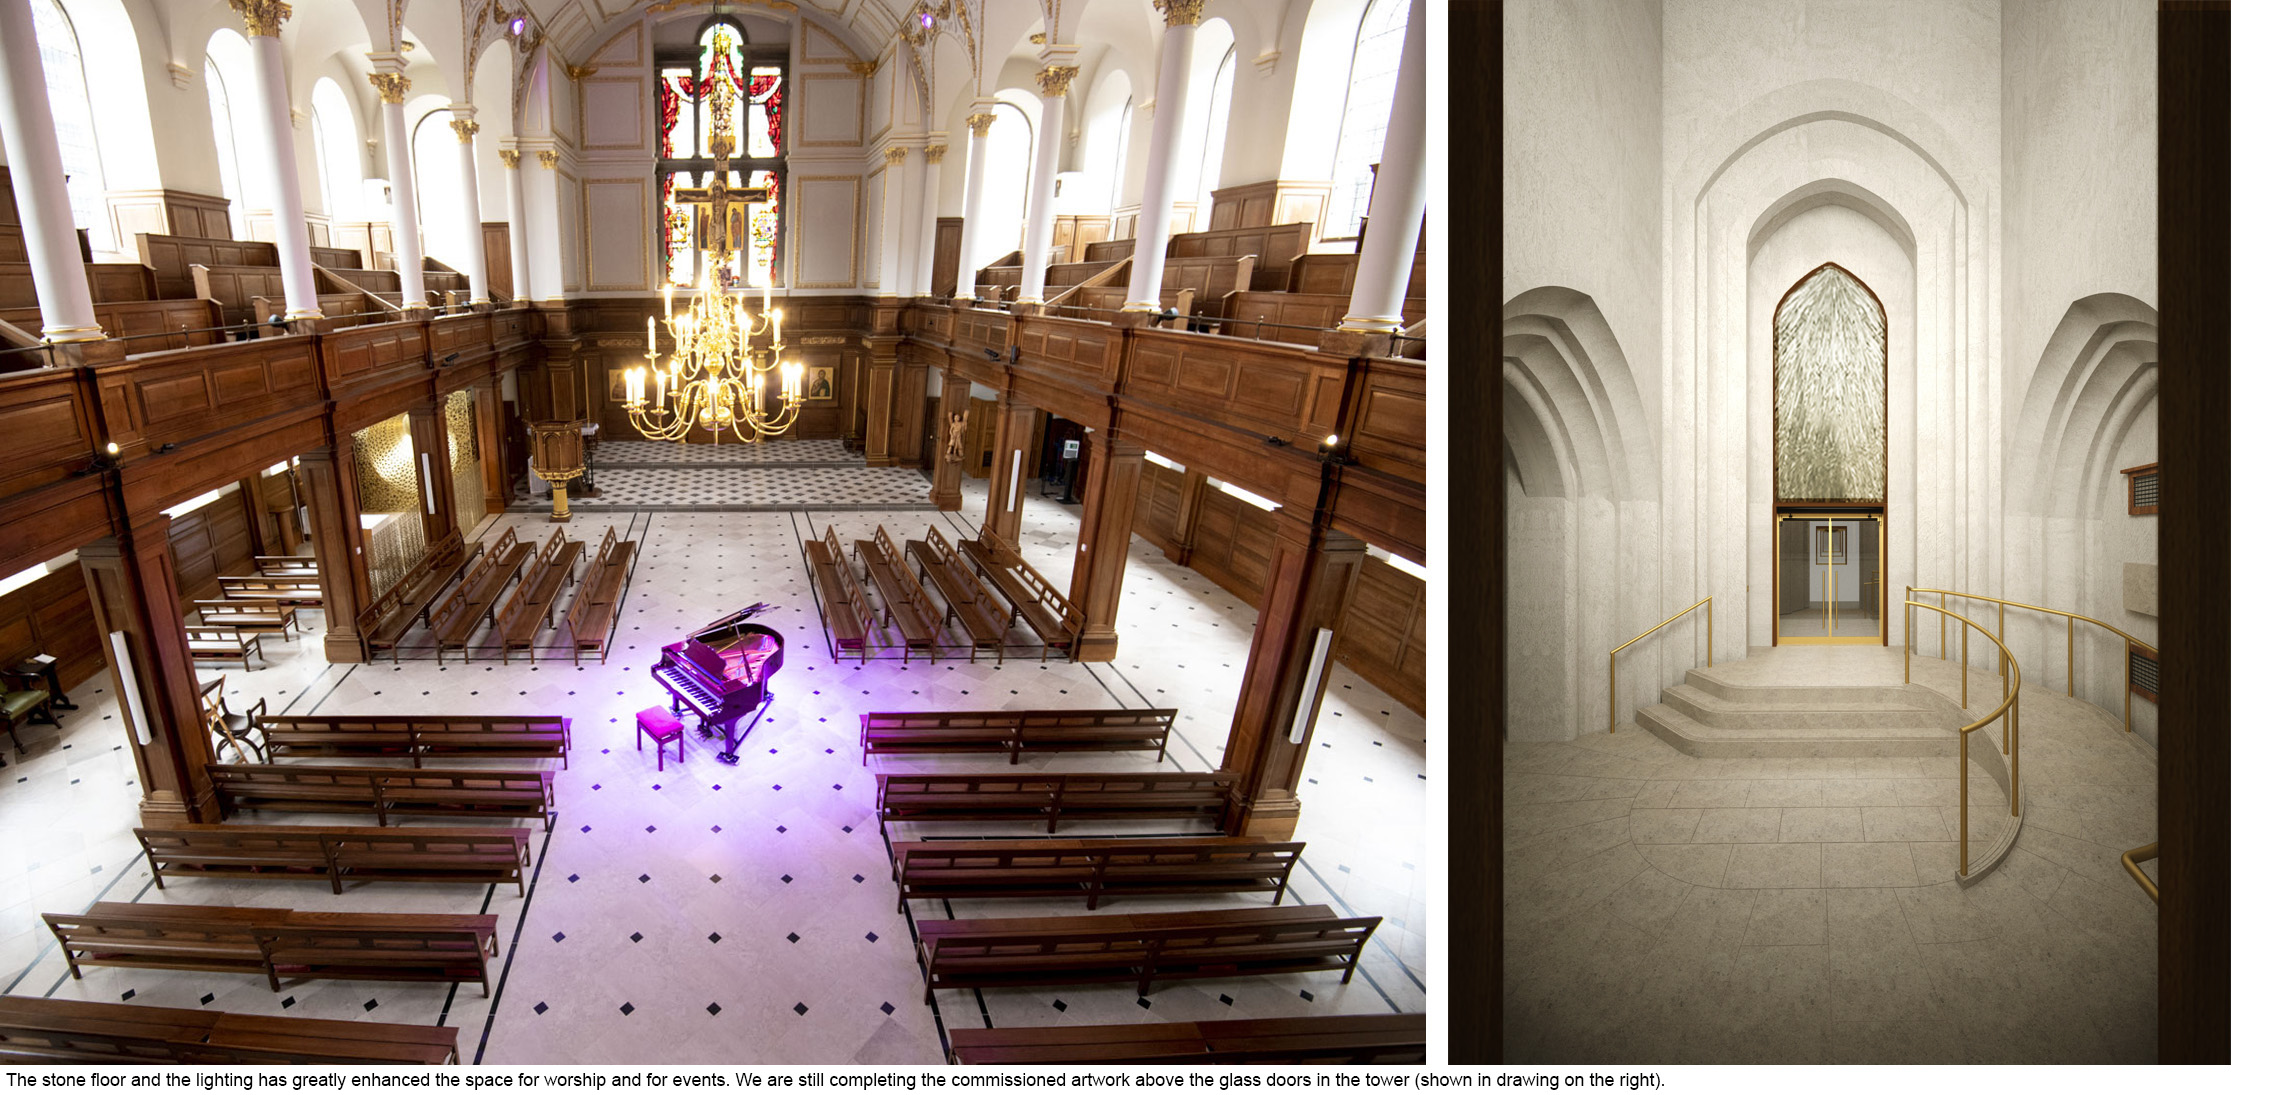 Presidents' Award Shortlist 2019 - St Andrew's church, Holborn - Overall Space and Tower